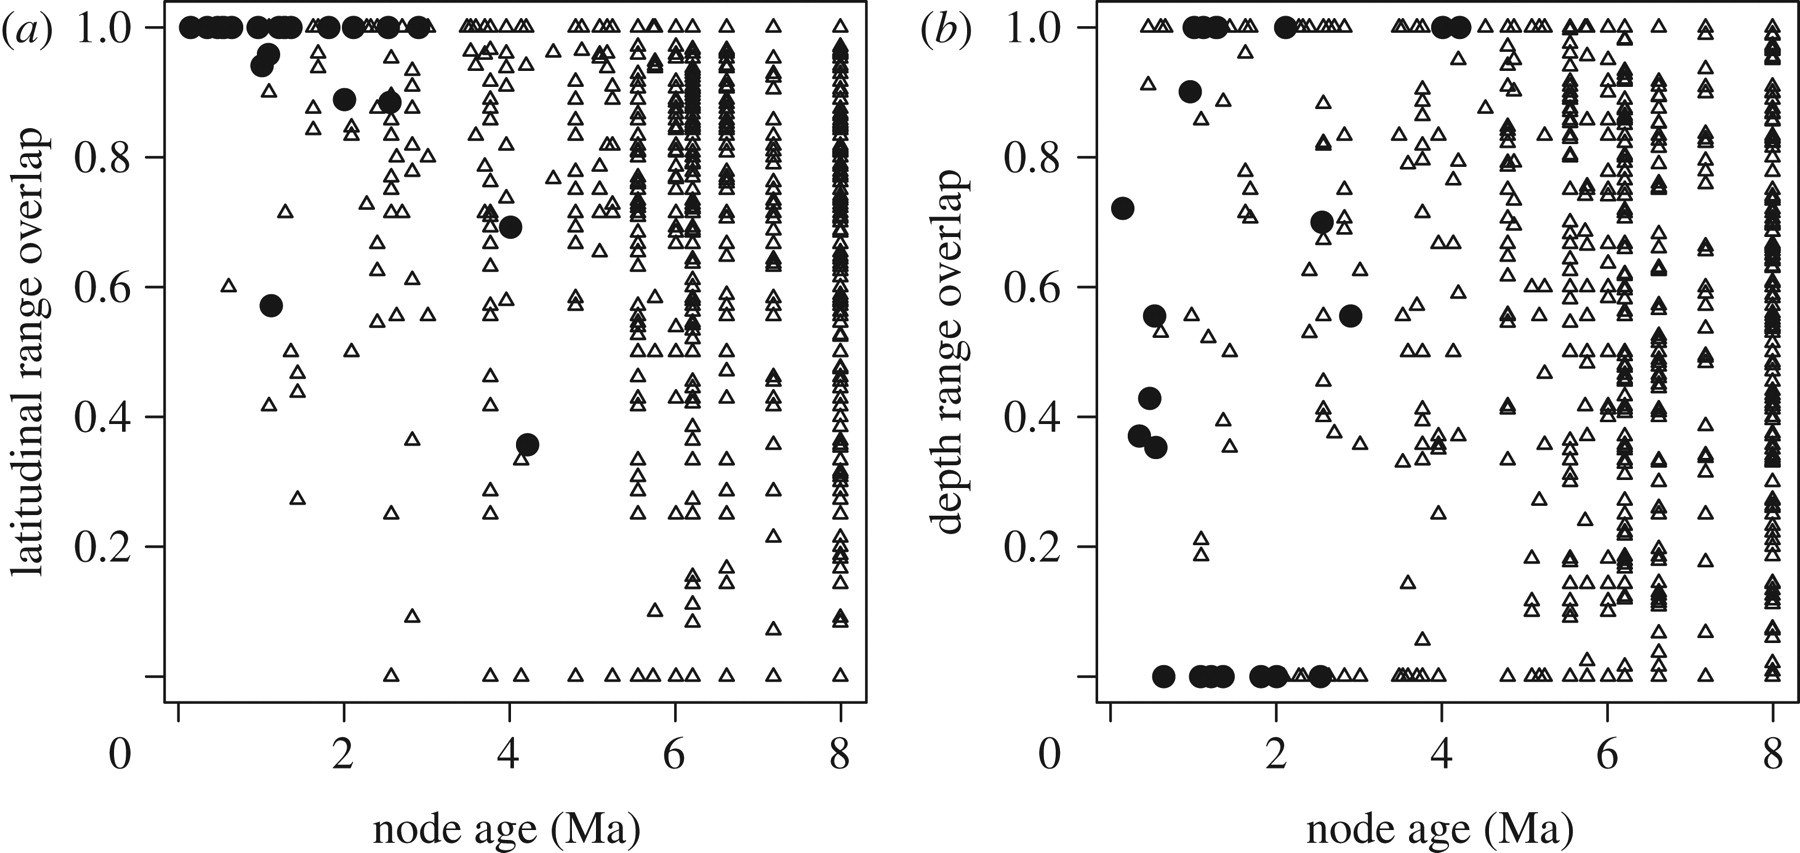 Speciation along a depth gradient in a marine adaptive